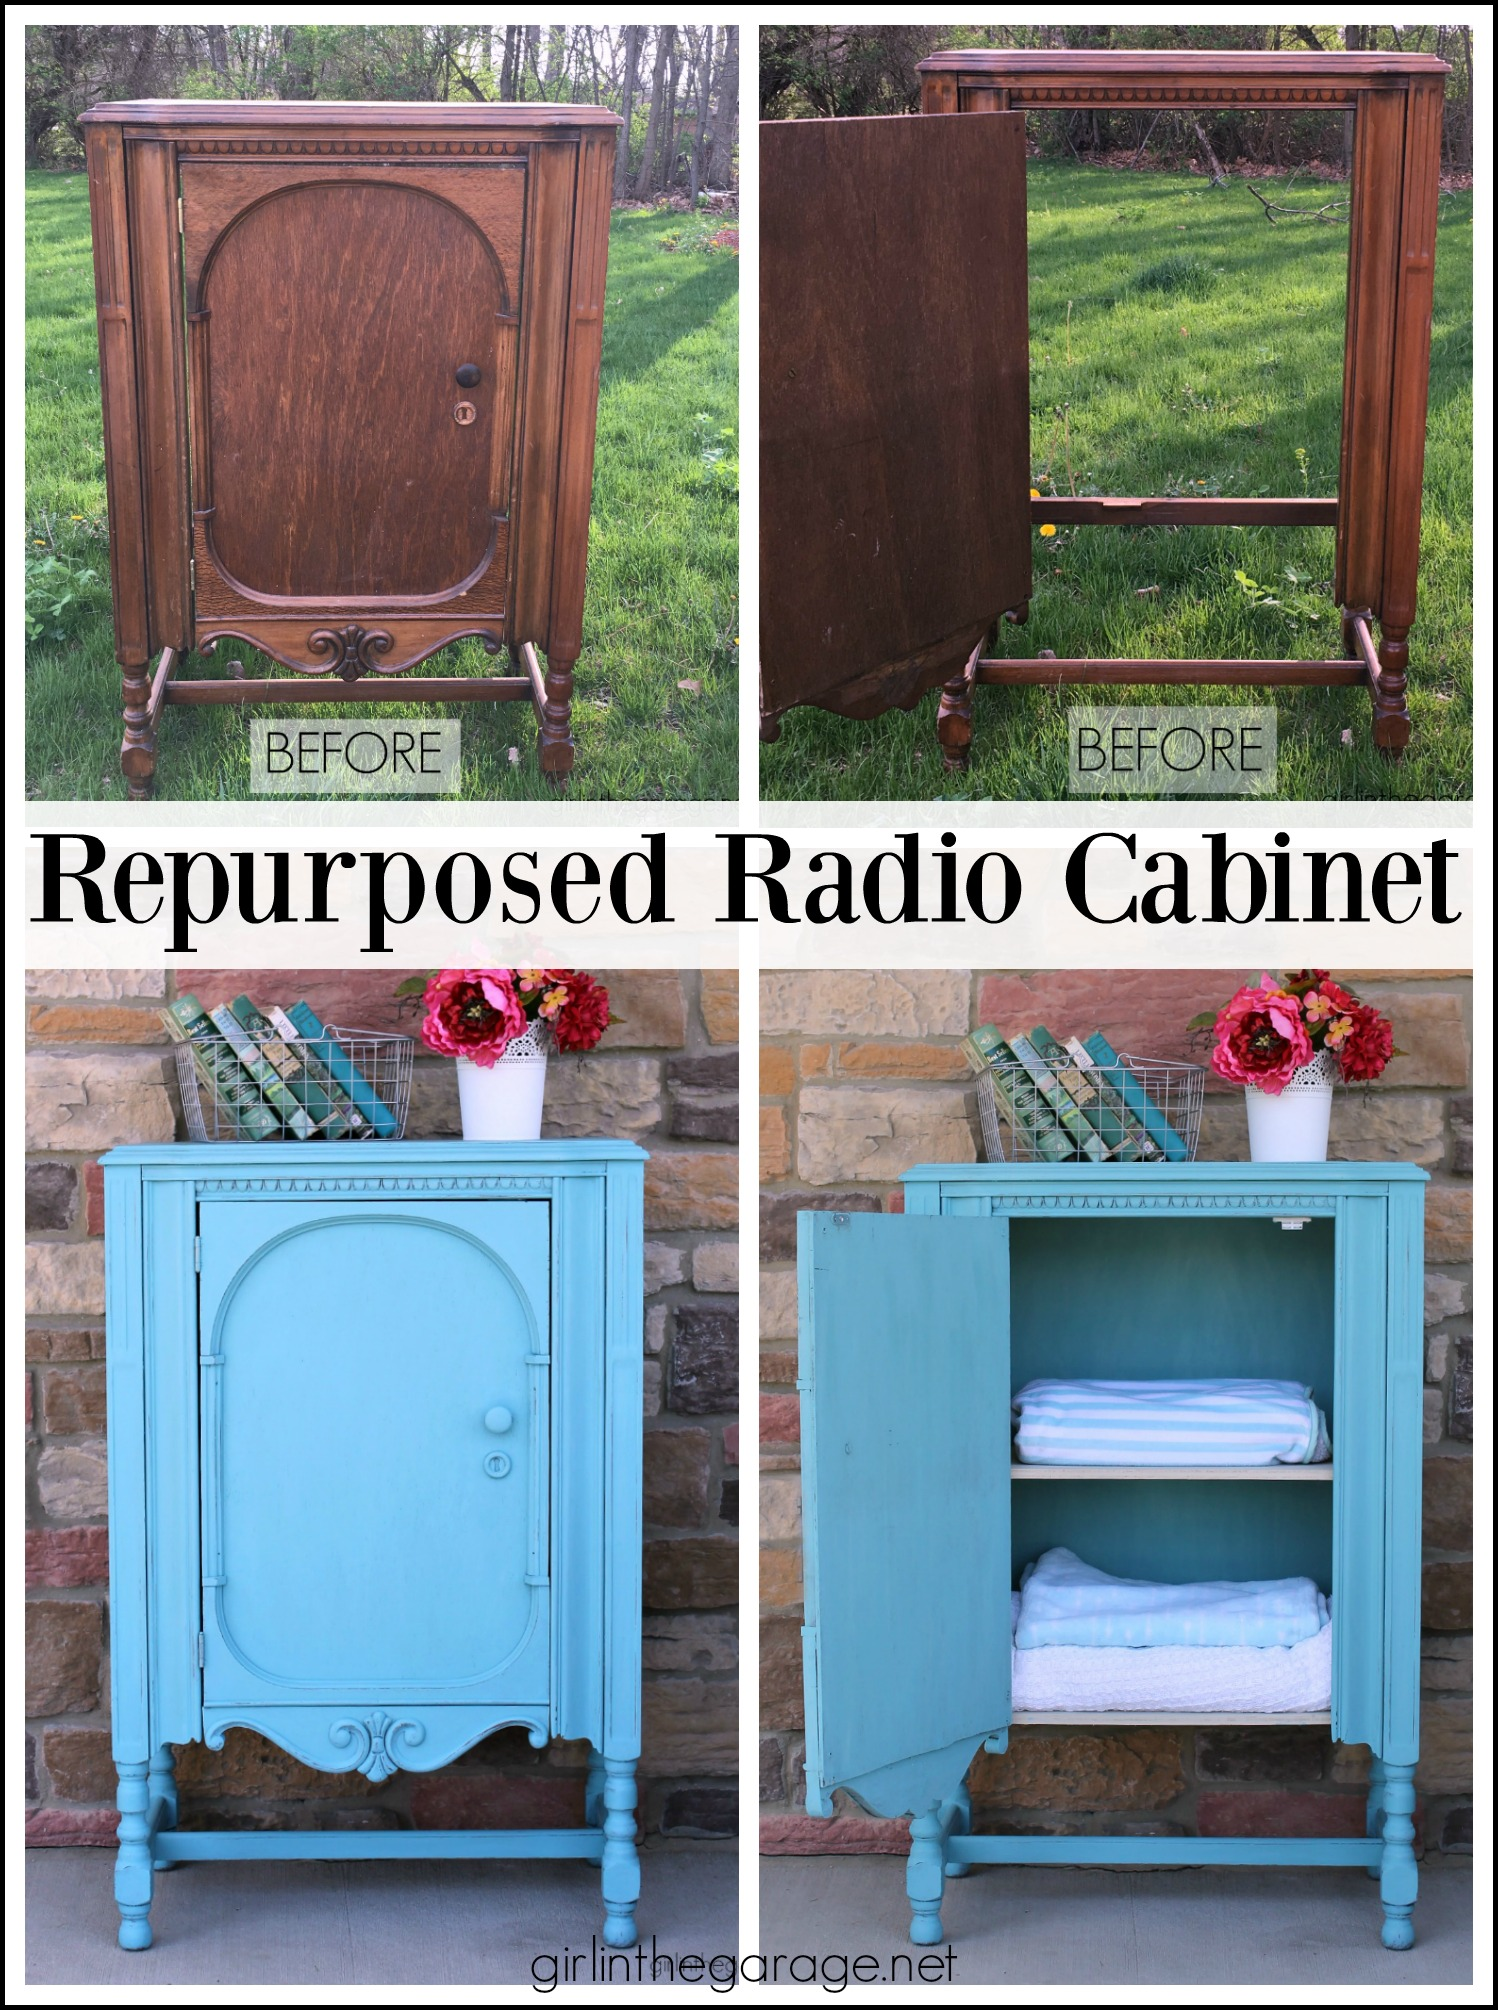 Thrifted repurposed radio cabinet makeover to storage cabinet with shelves. Annie Sloan Chalk Paint in Provence. DIY tutorial by Girl in the Garage.